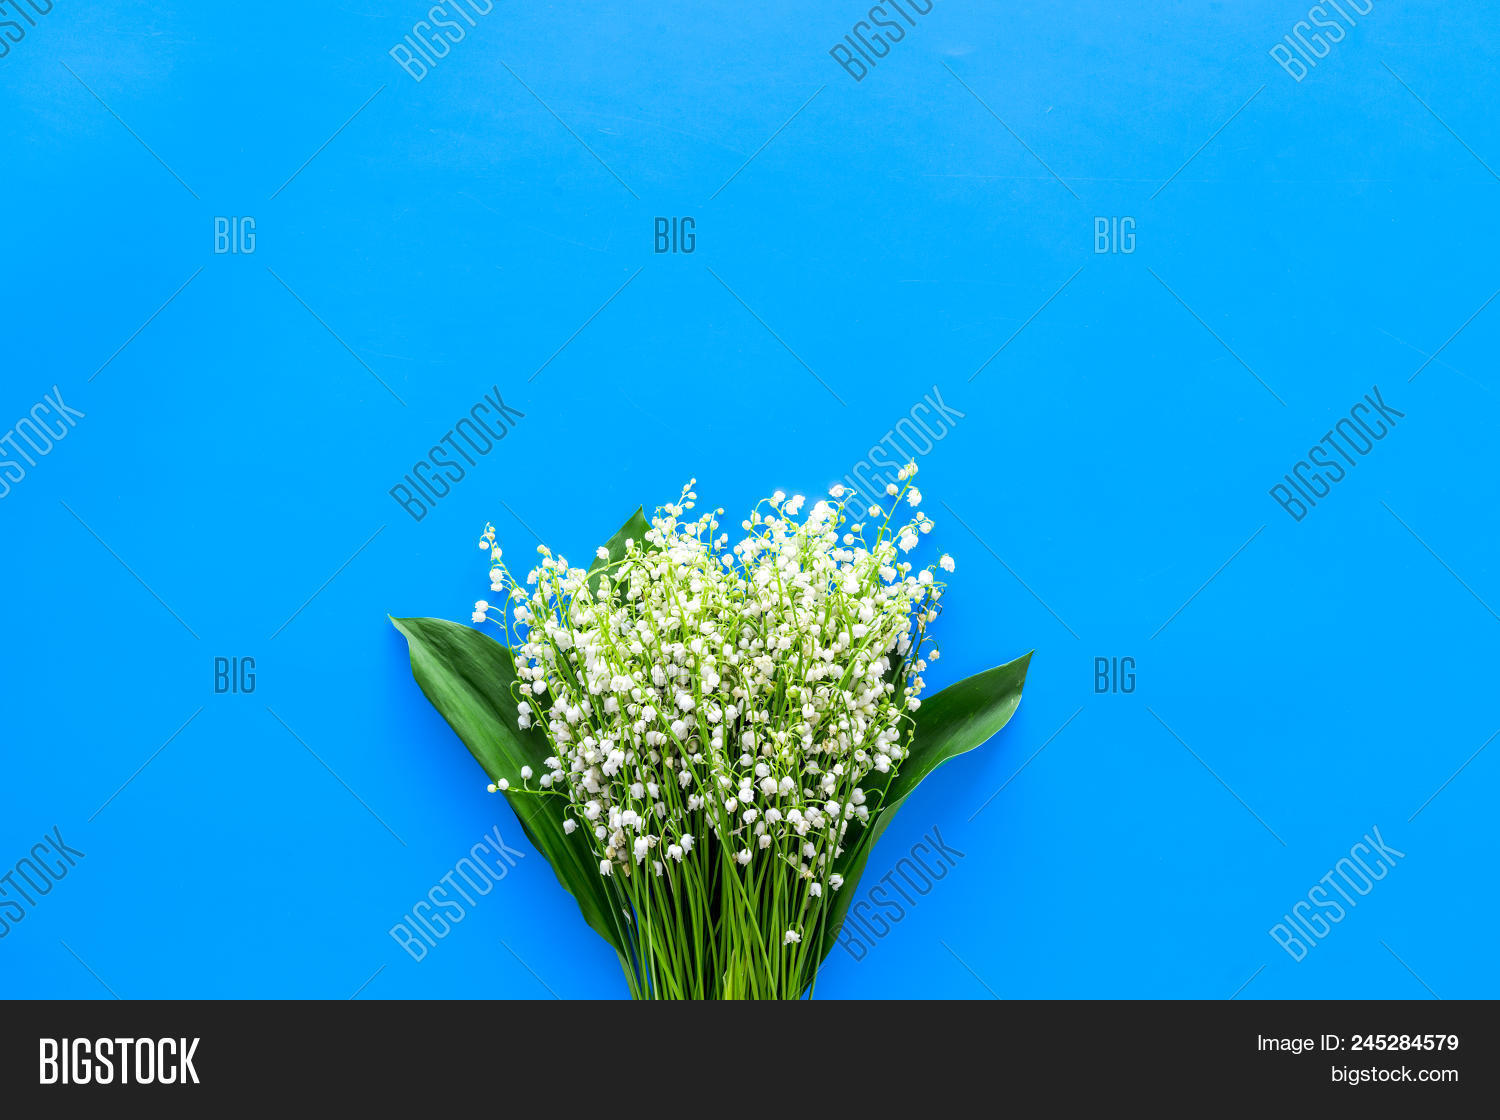 Small fragrant spring image photo free trial bigstock small and fragrant spring flowers bouqet of lily of the valley flowers on pastel blue mightylinksfo